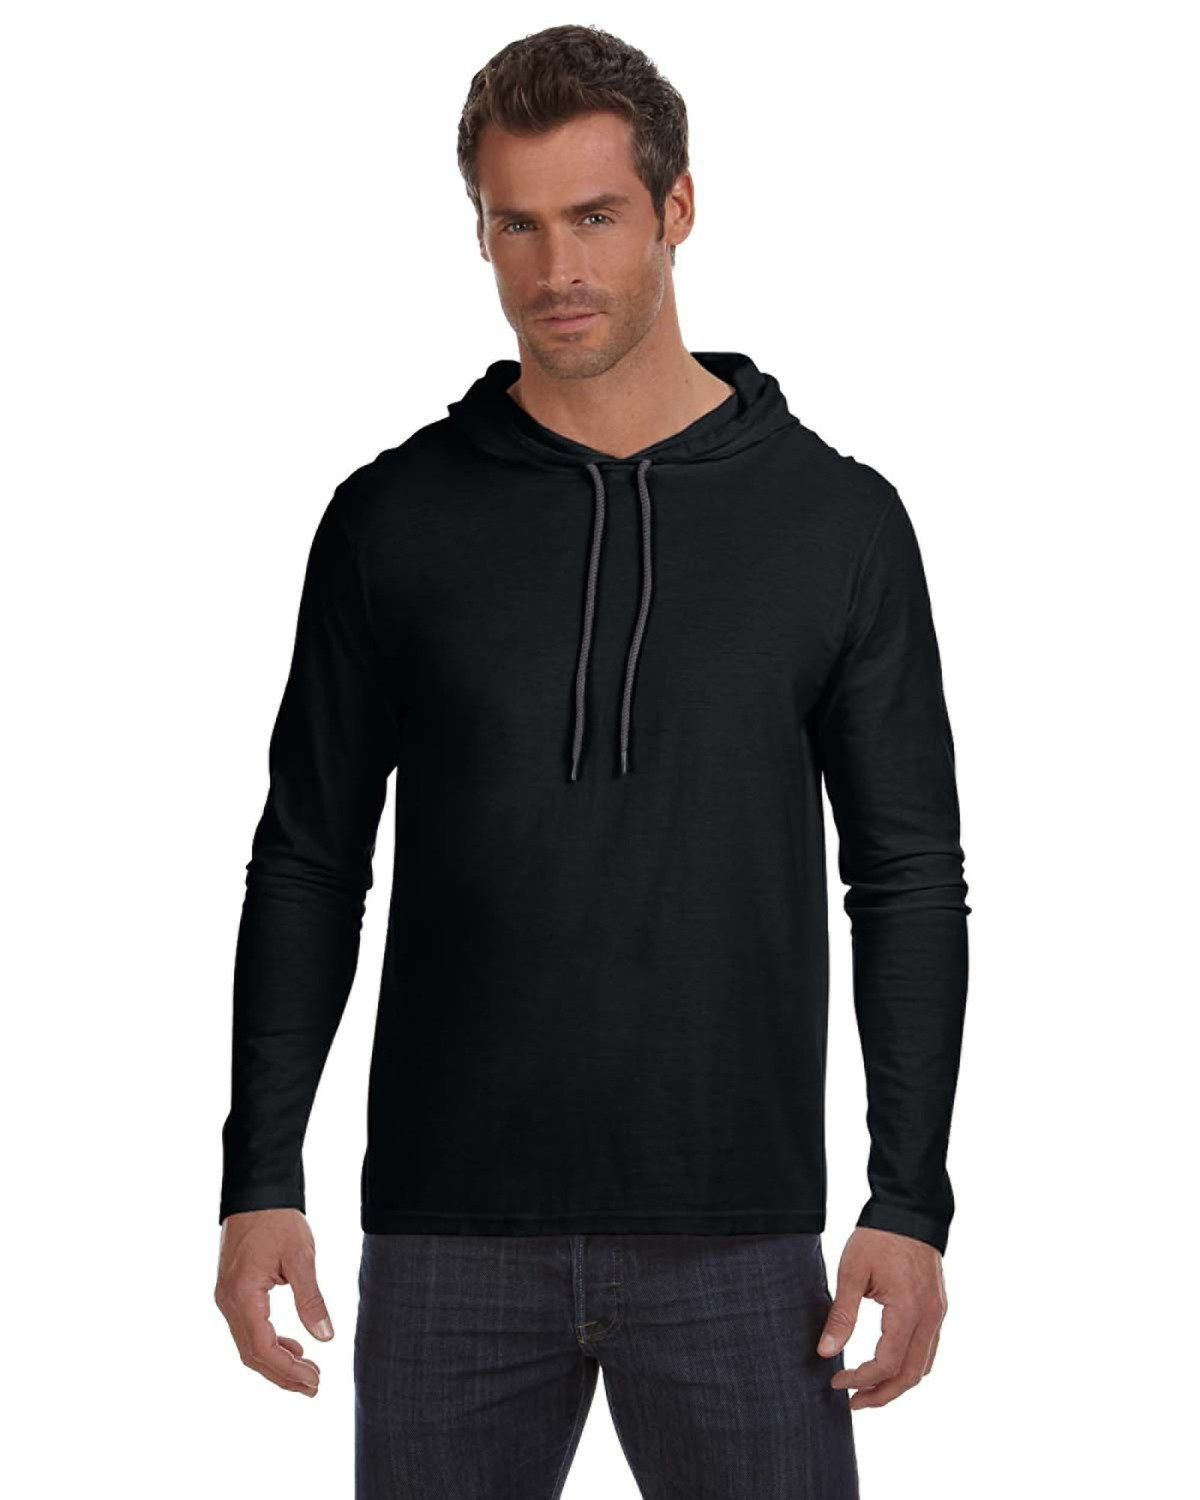 Anvil - 987AN - Lightweight Long-Sleeve Hooded T-Shirt